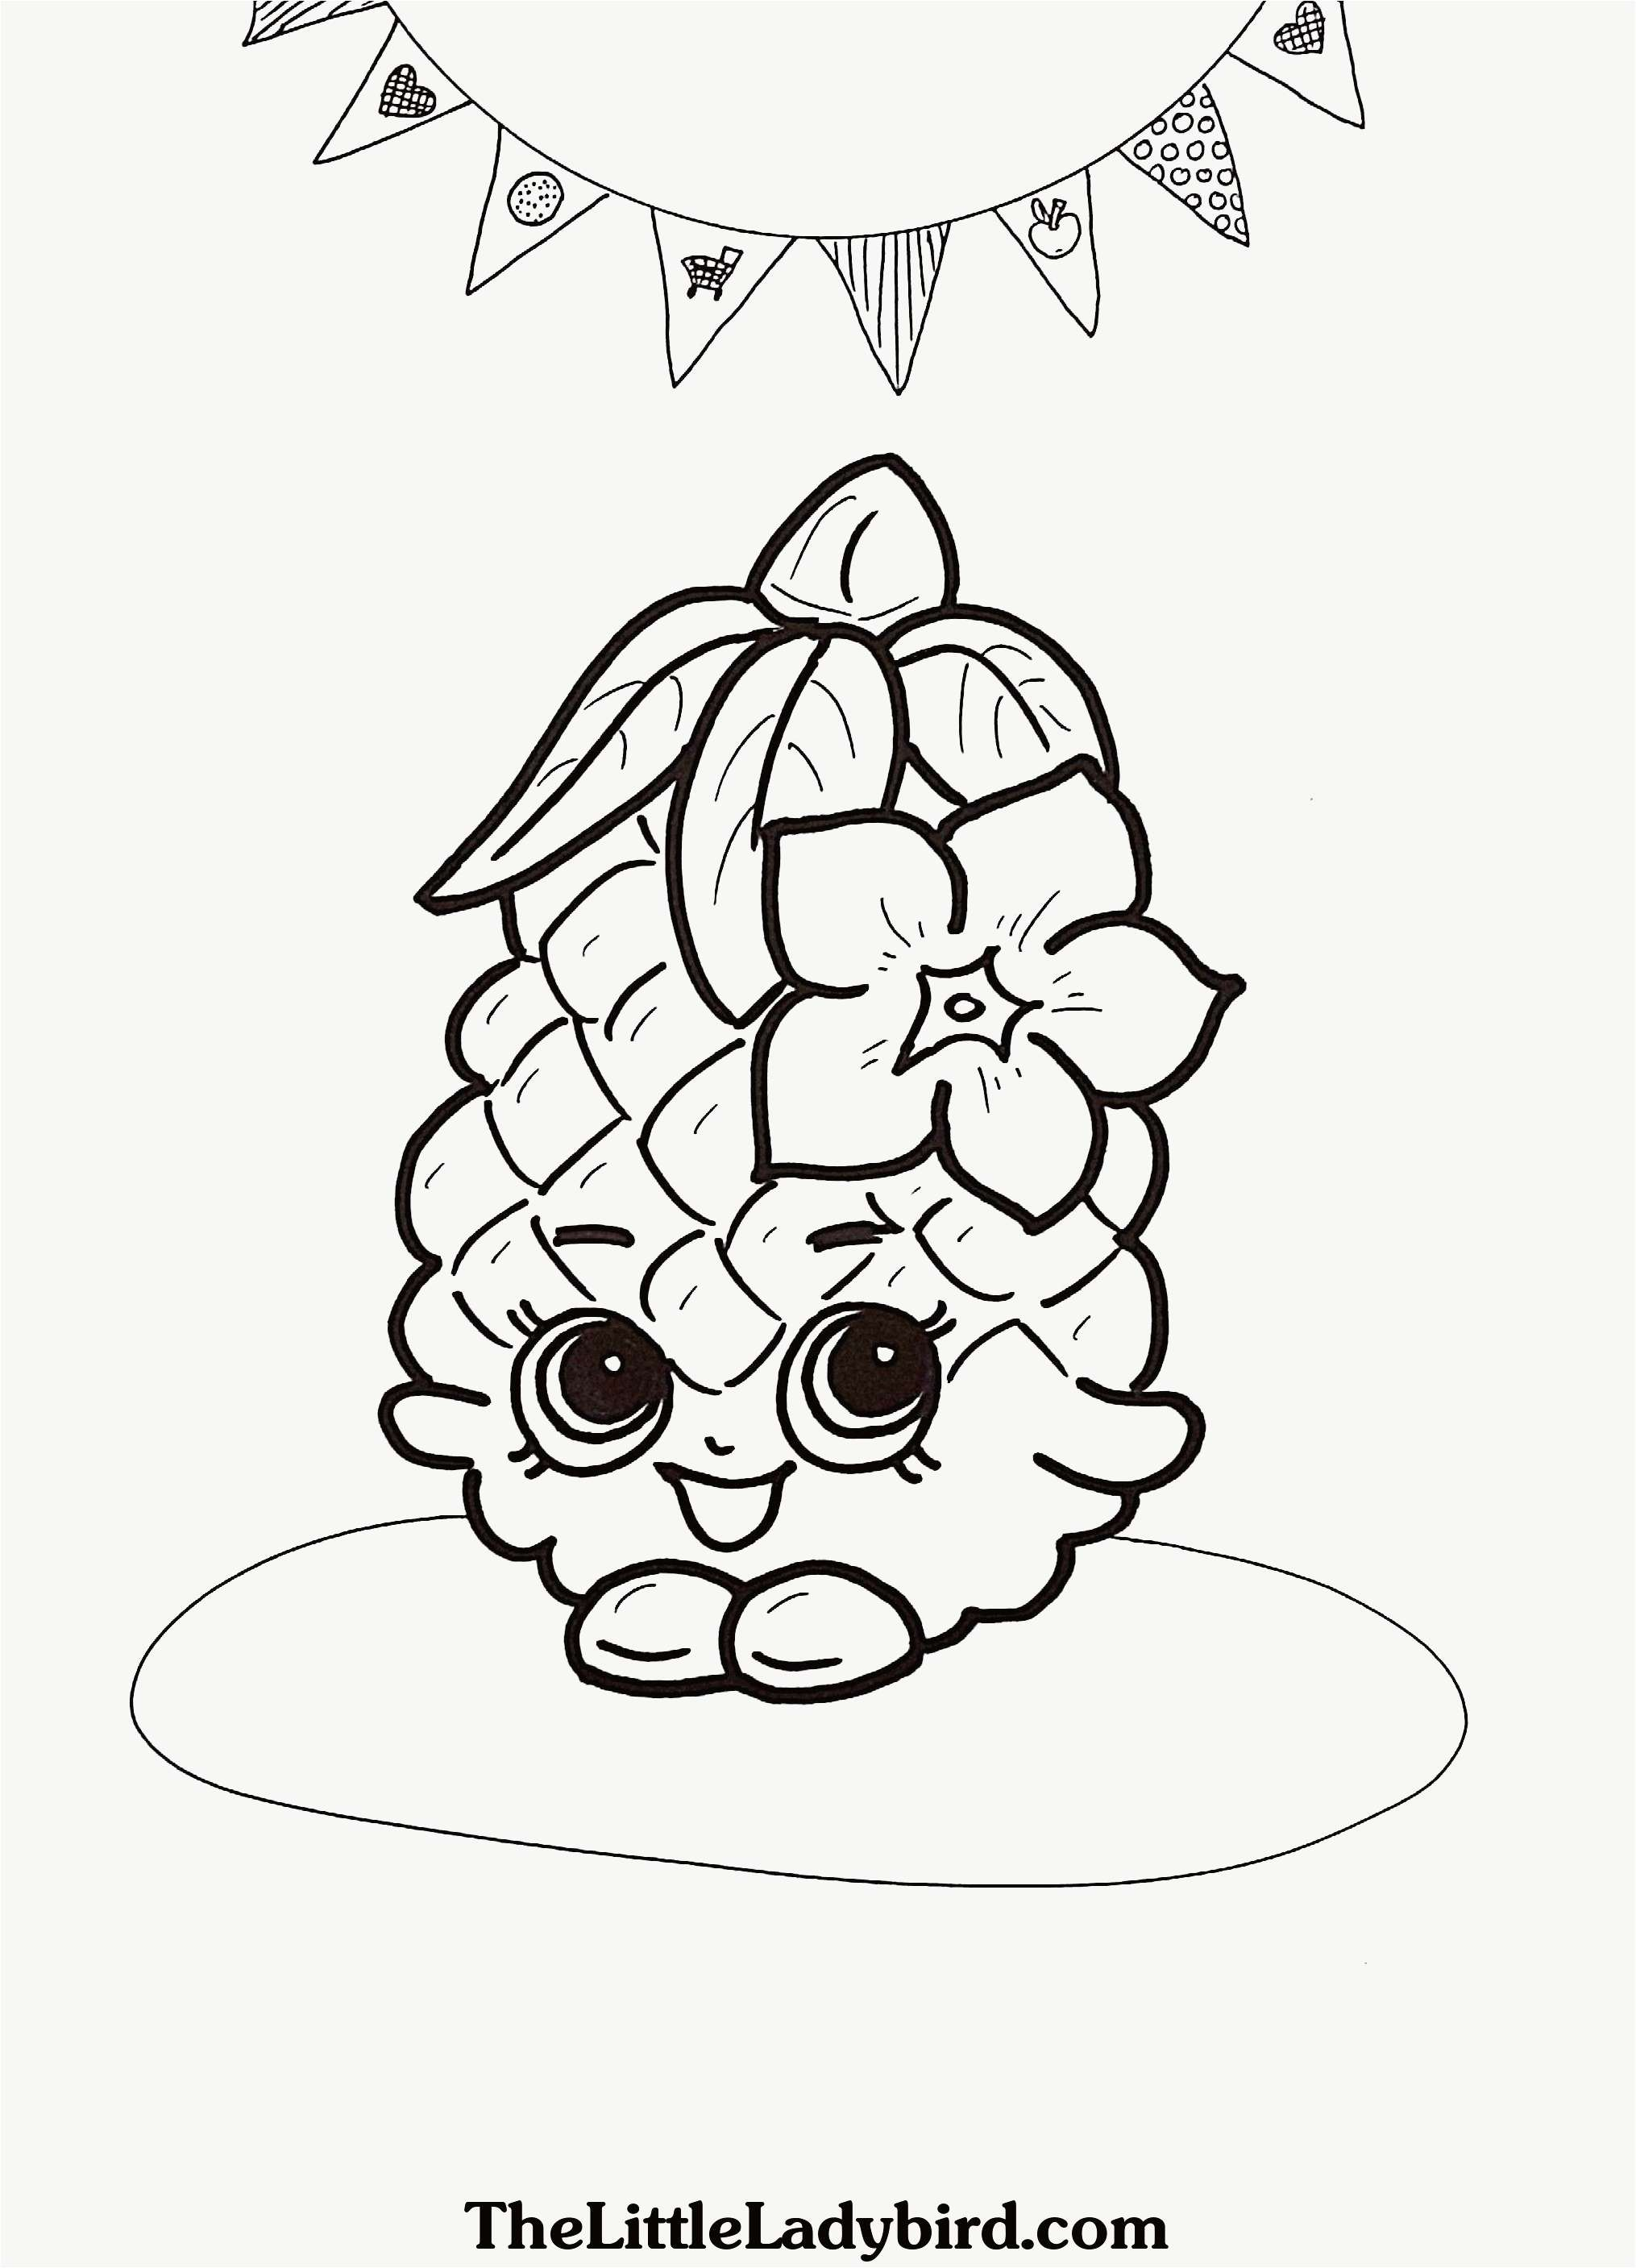 October Coloring Pages Printable | Free Coloring Sheets